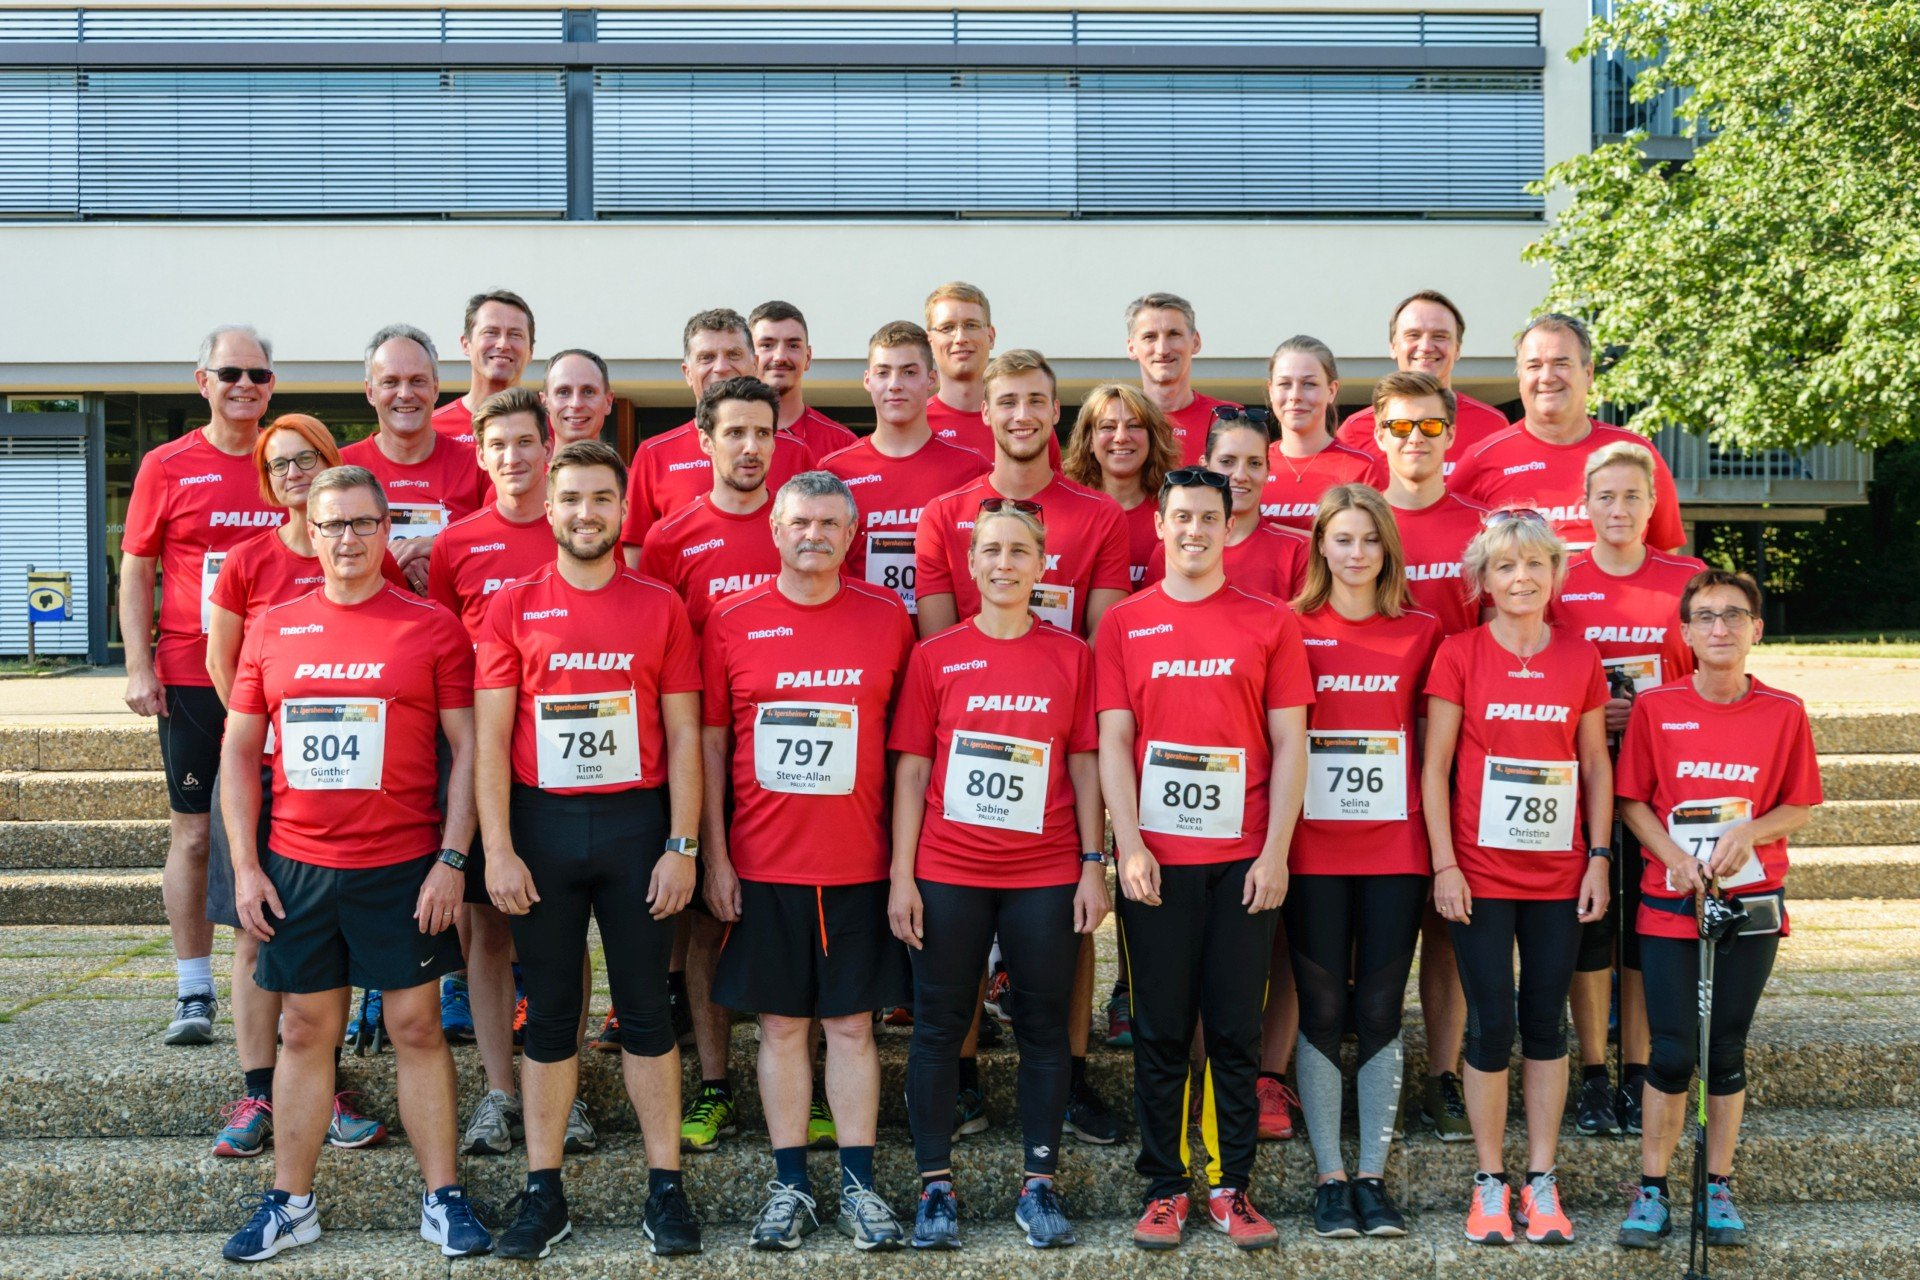 Good results for PALUX at the 4th Igersheim Company Run 2019